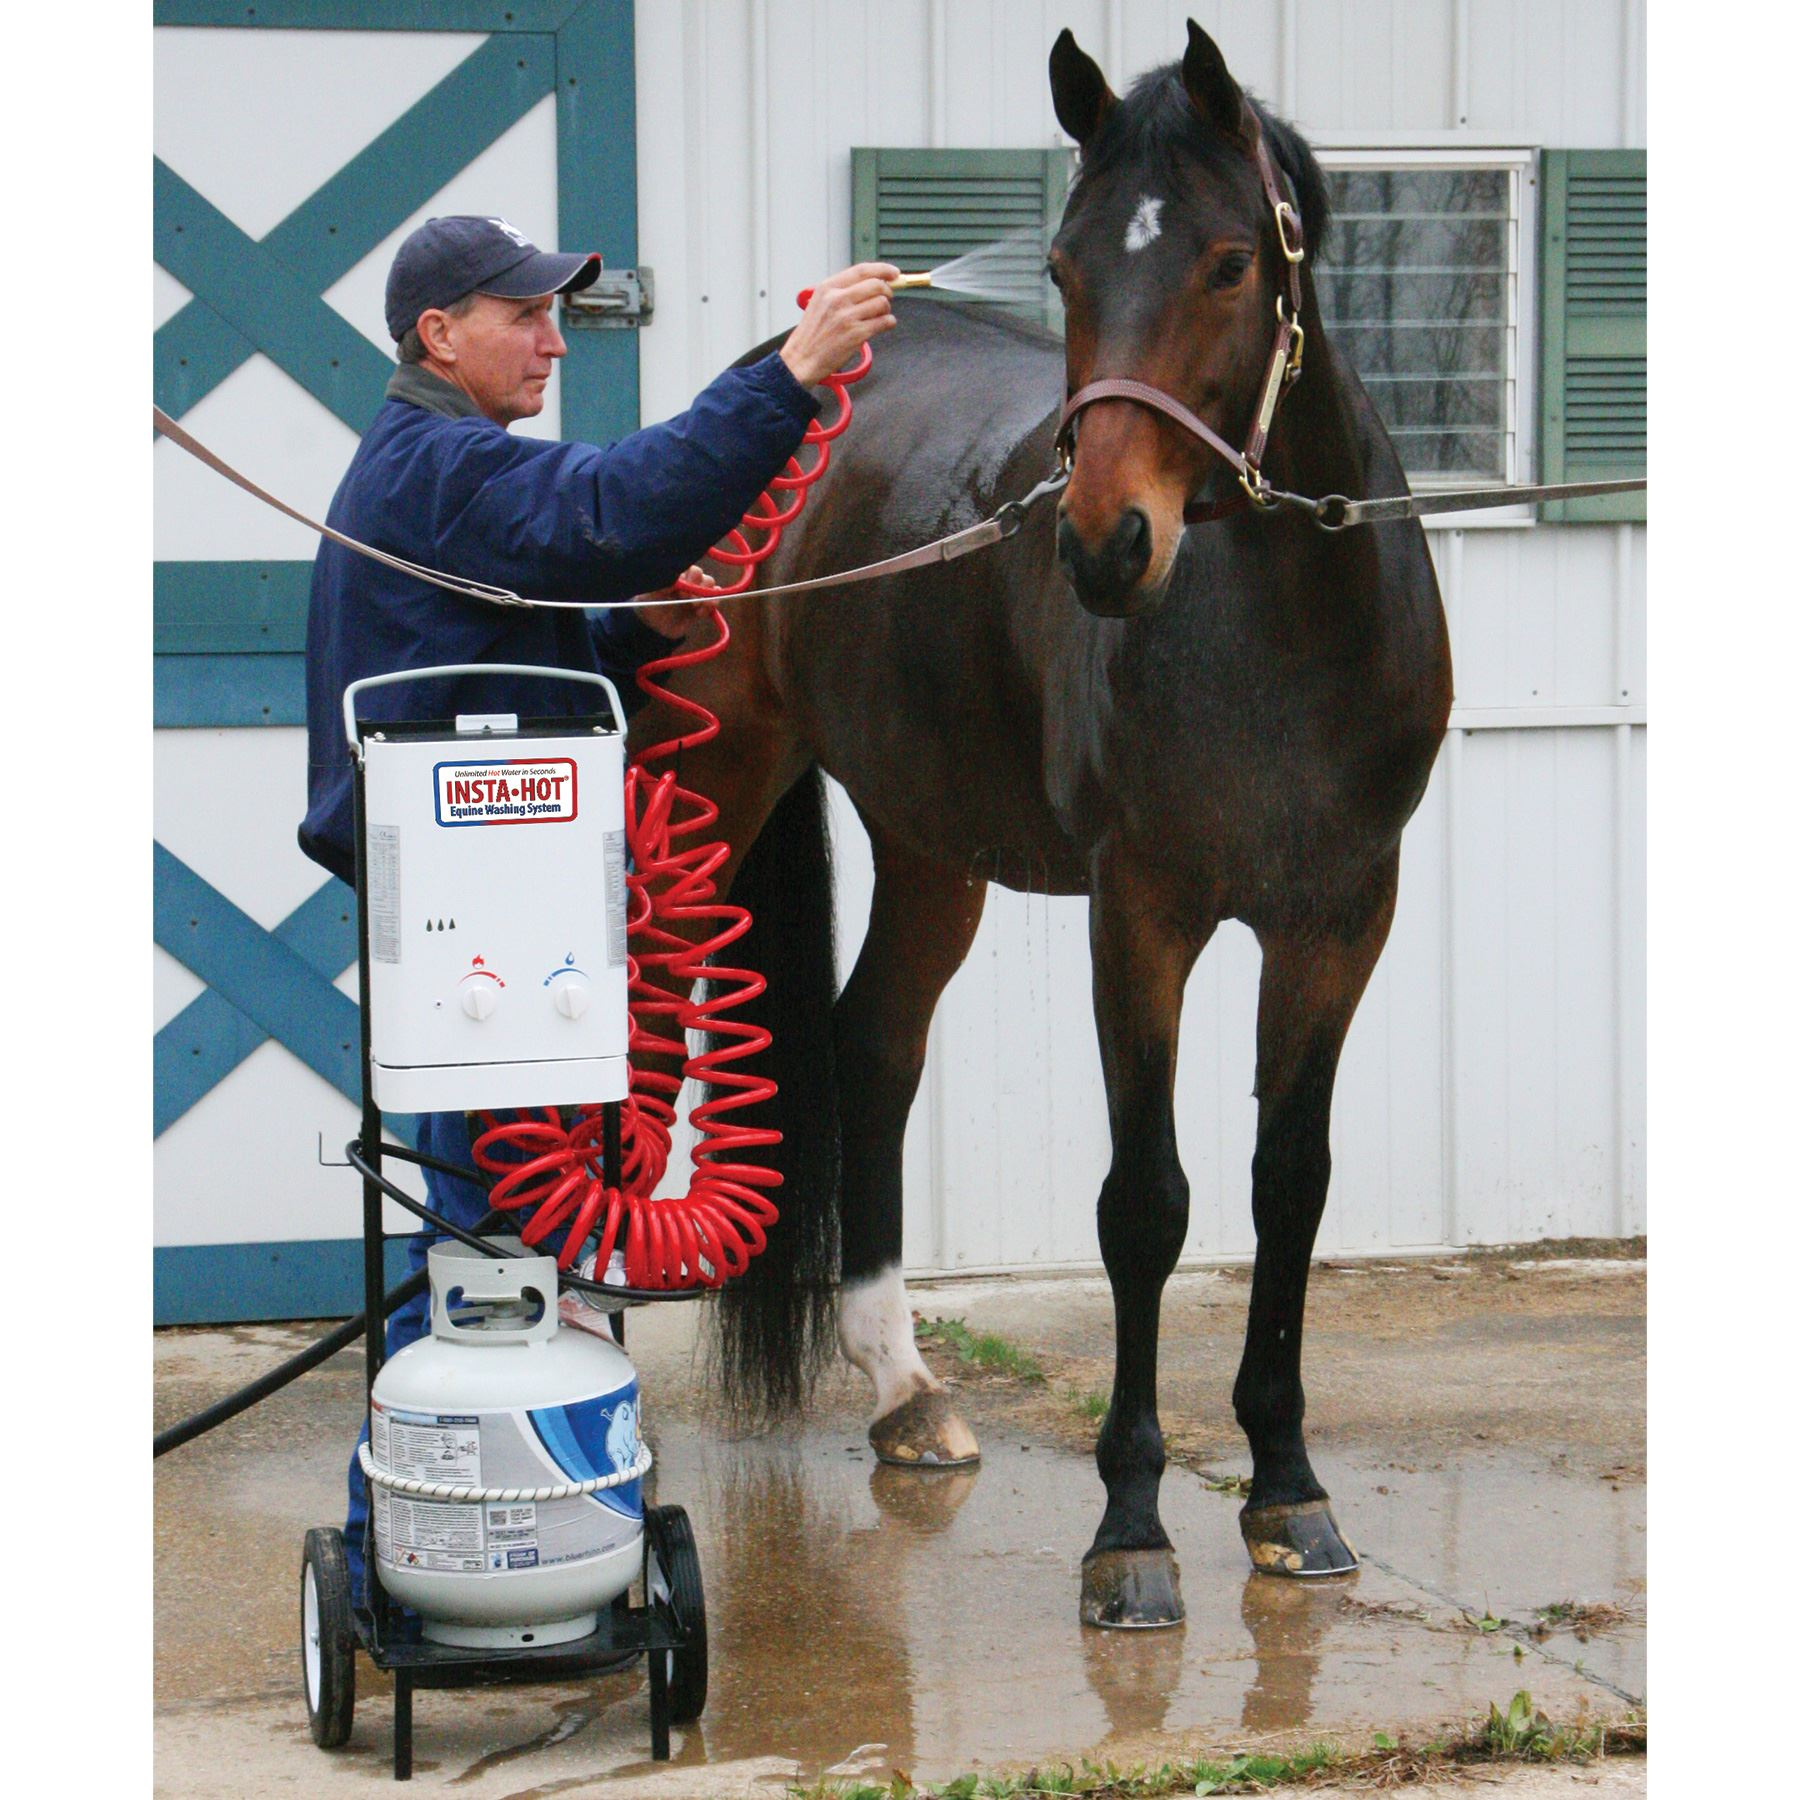 Insta Hot 174 Equine Portable Washing System In Best Sellers